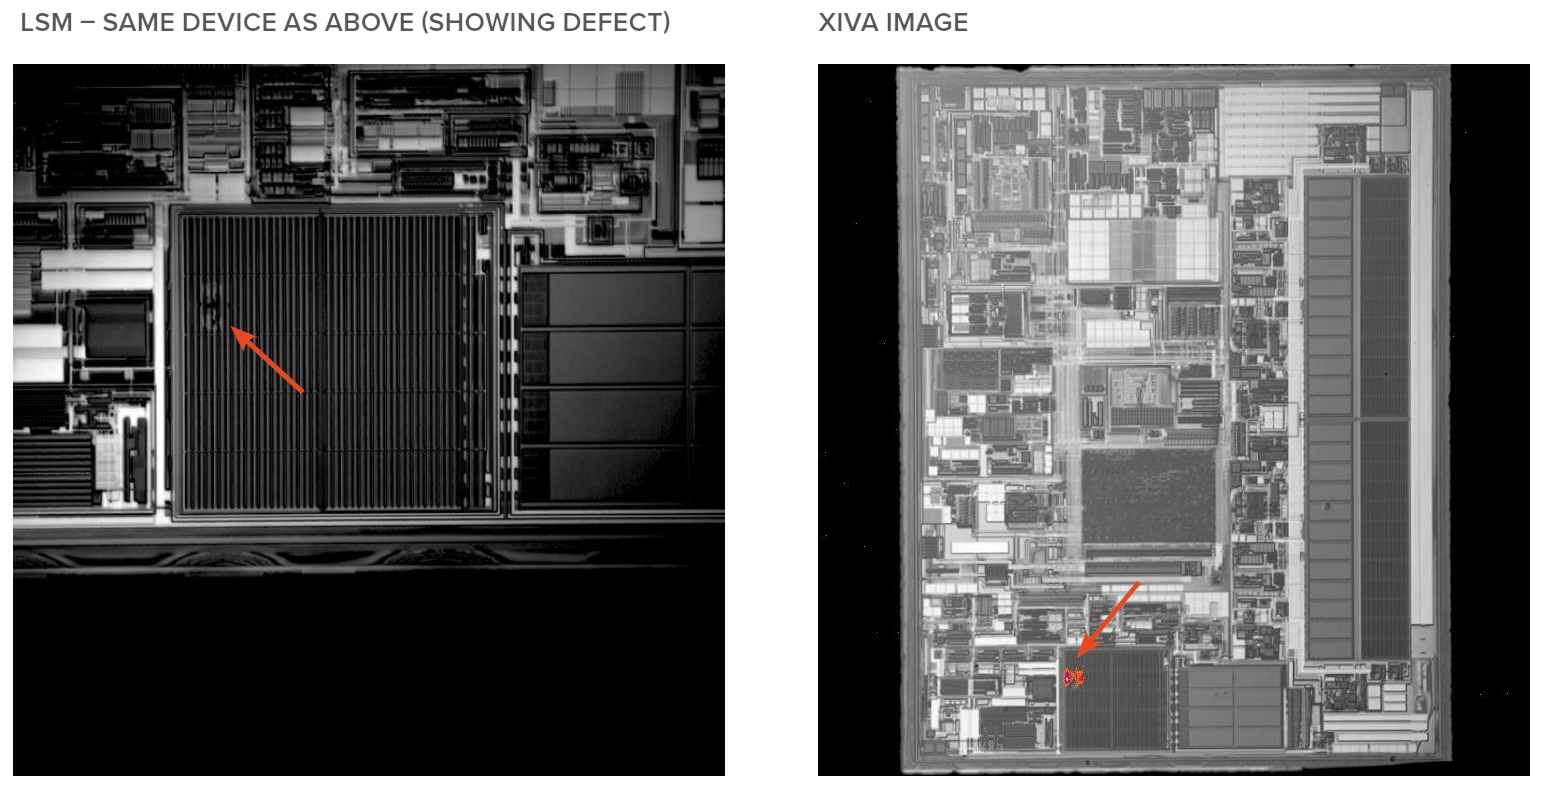 LSM - Same Device as above (showing defect) and XIVA Image